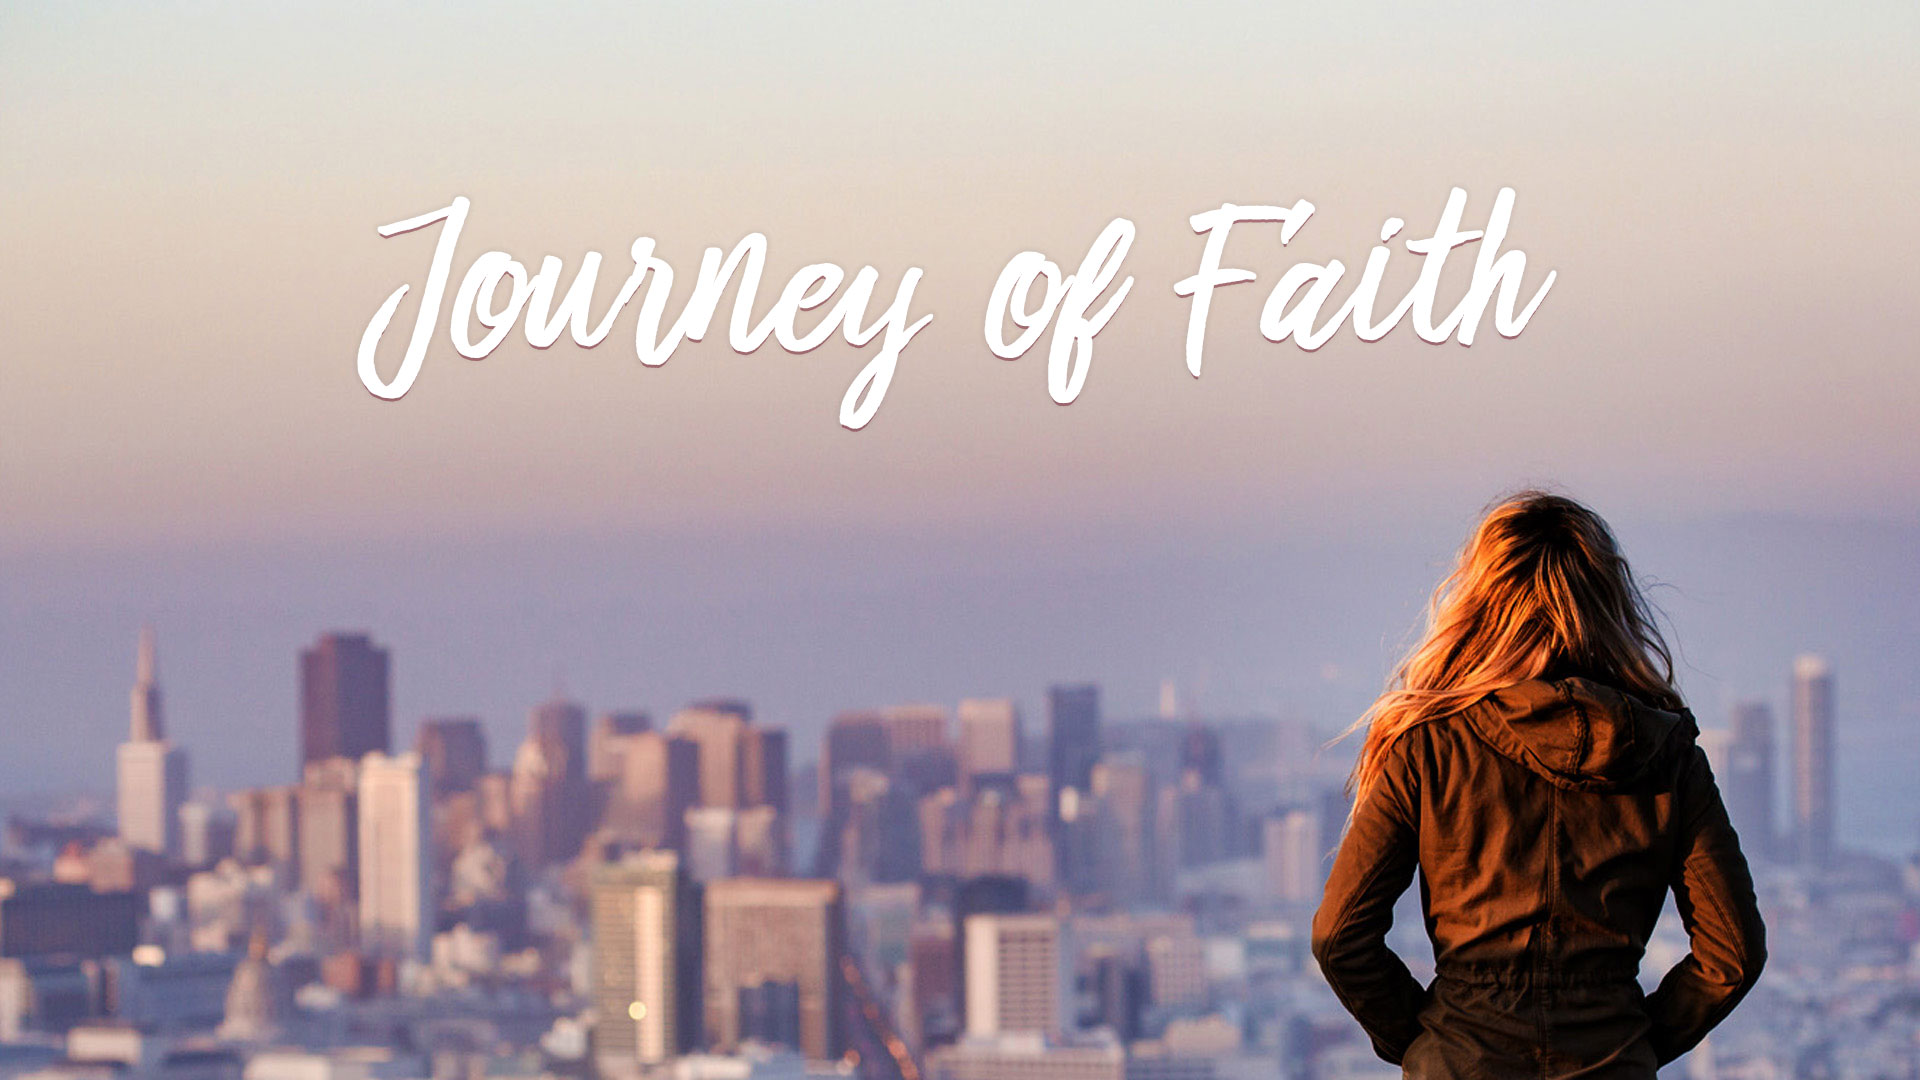 Listen to Journey of Faith